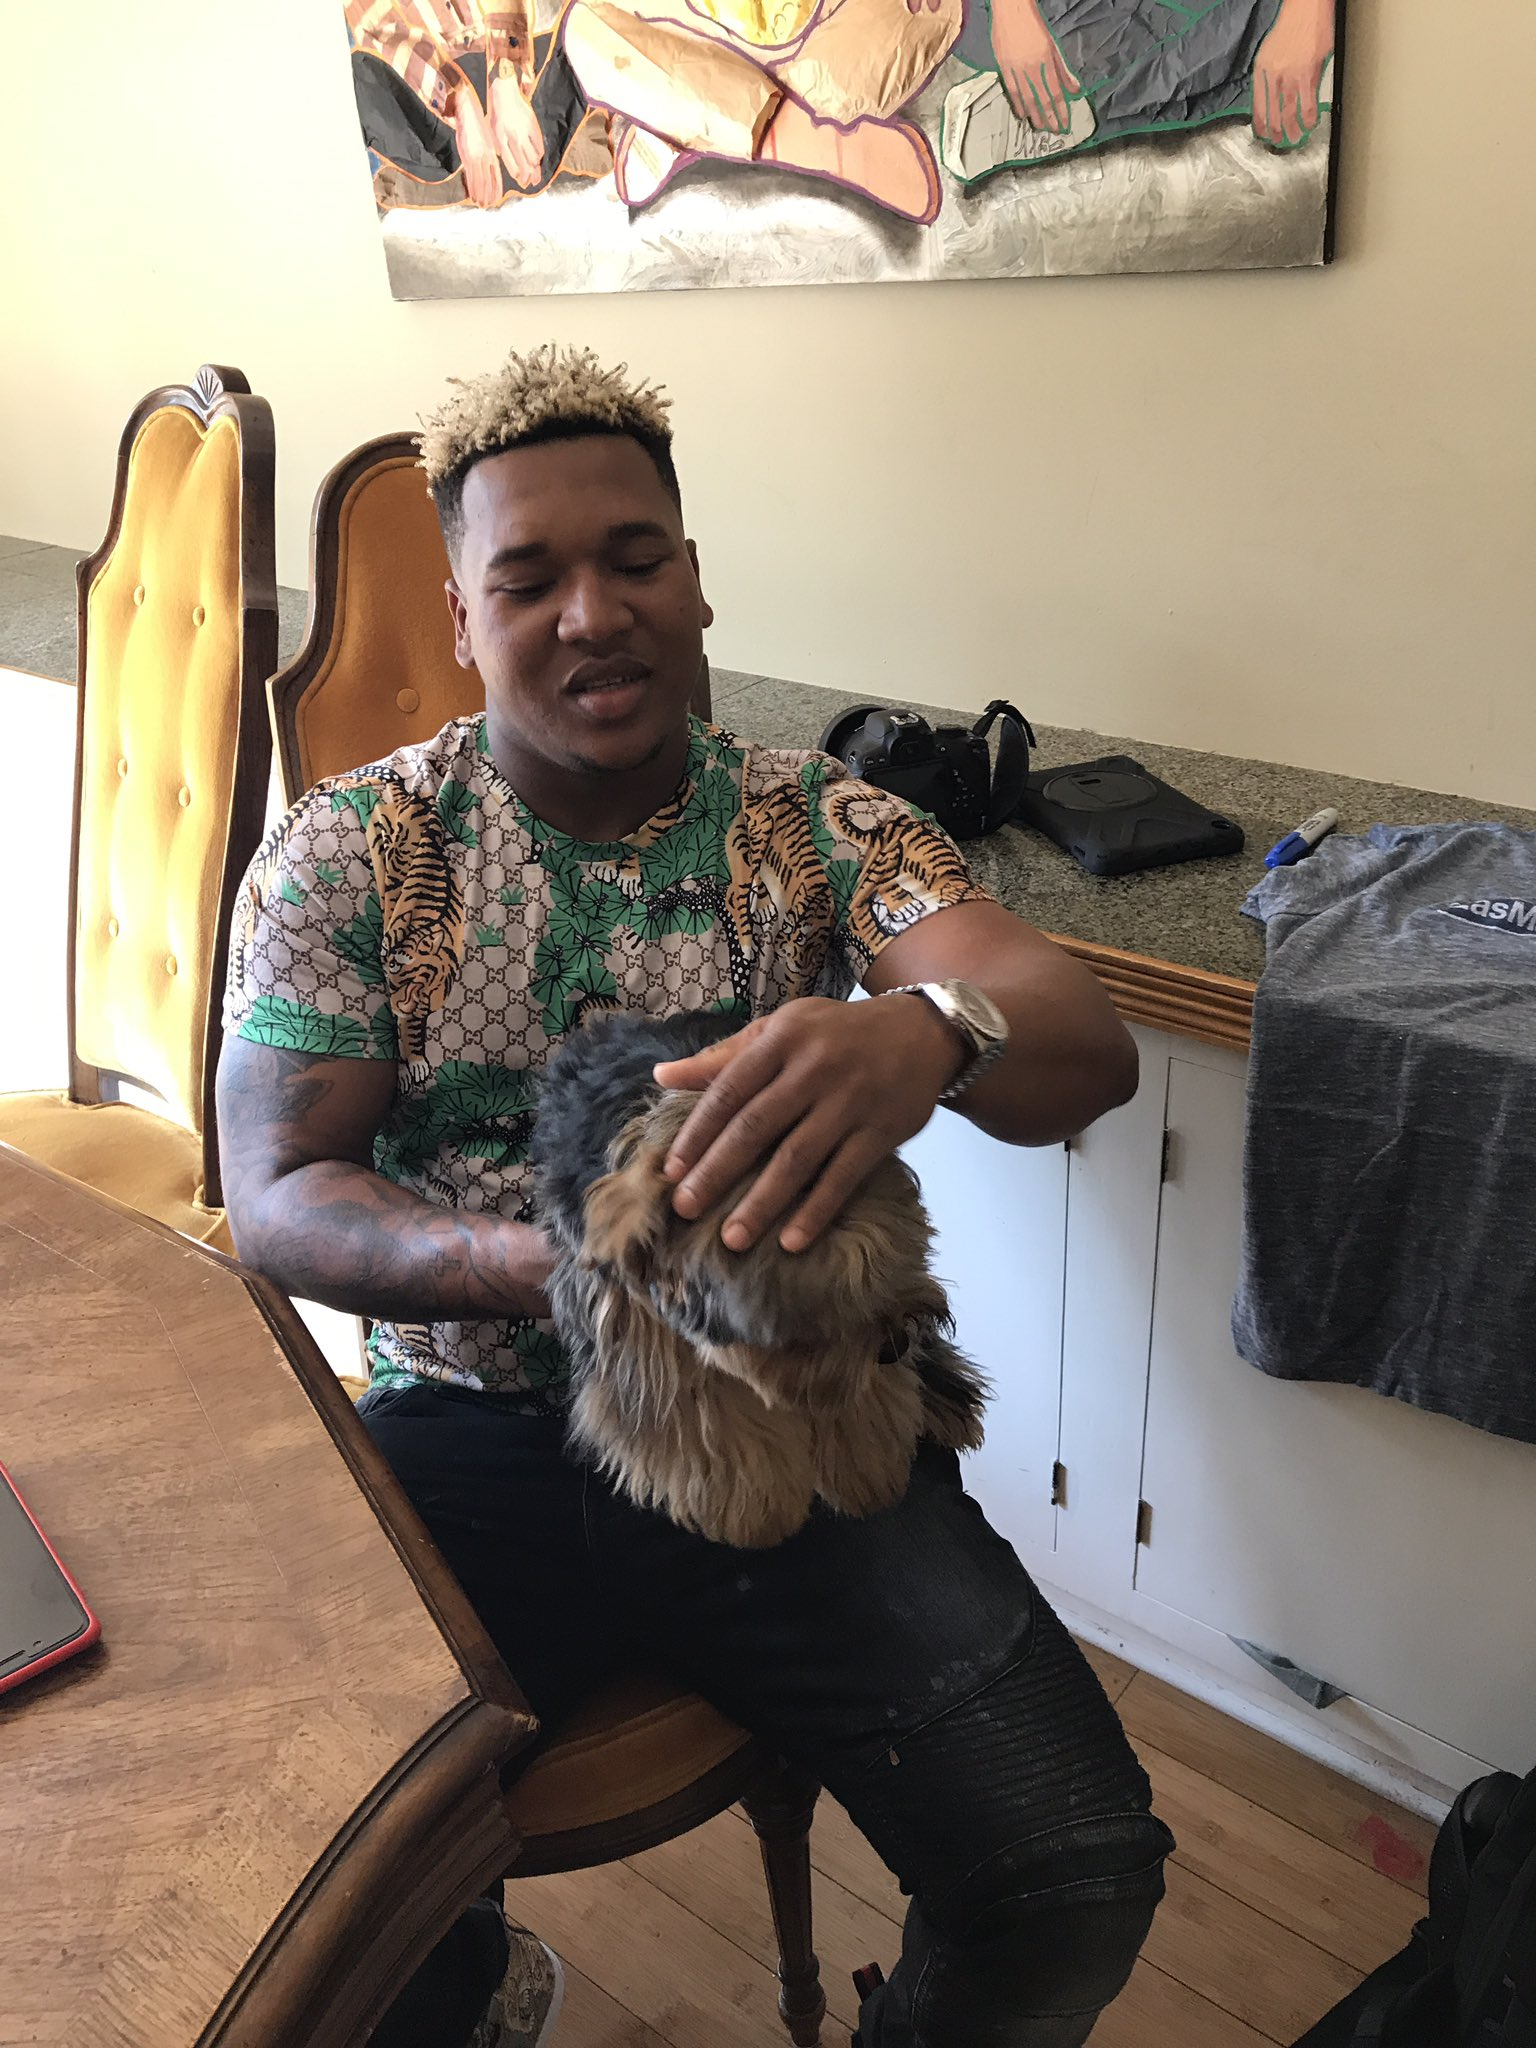 Welcome to Cleveland. Get to know @Indians star @MrLapara in Real Life. #MIRL @mlb @LasMayores https://t.co/kwygH7oySa